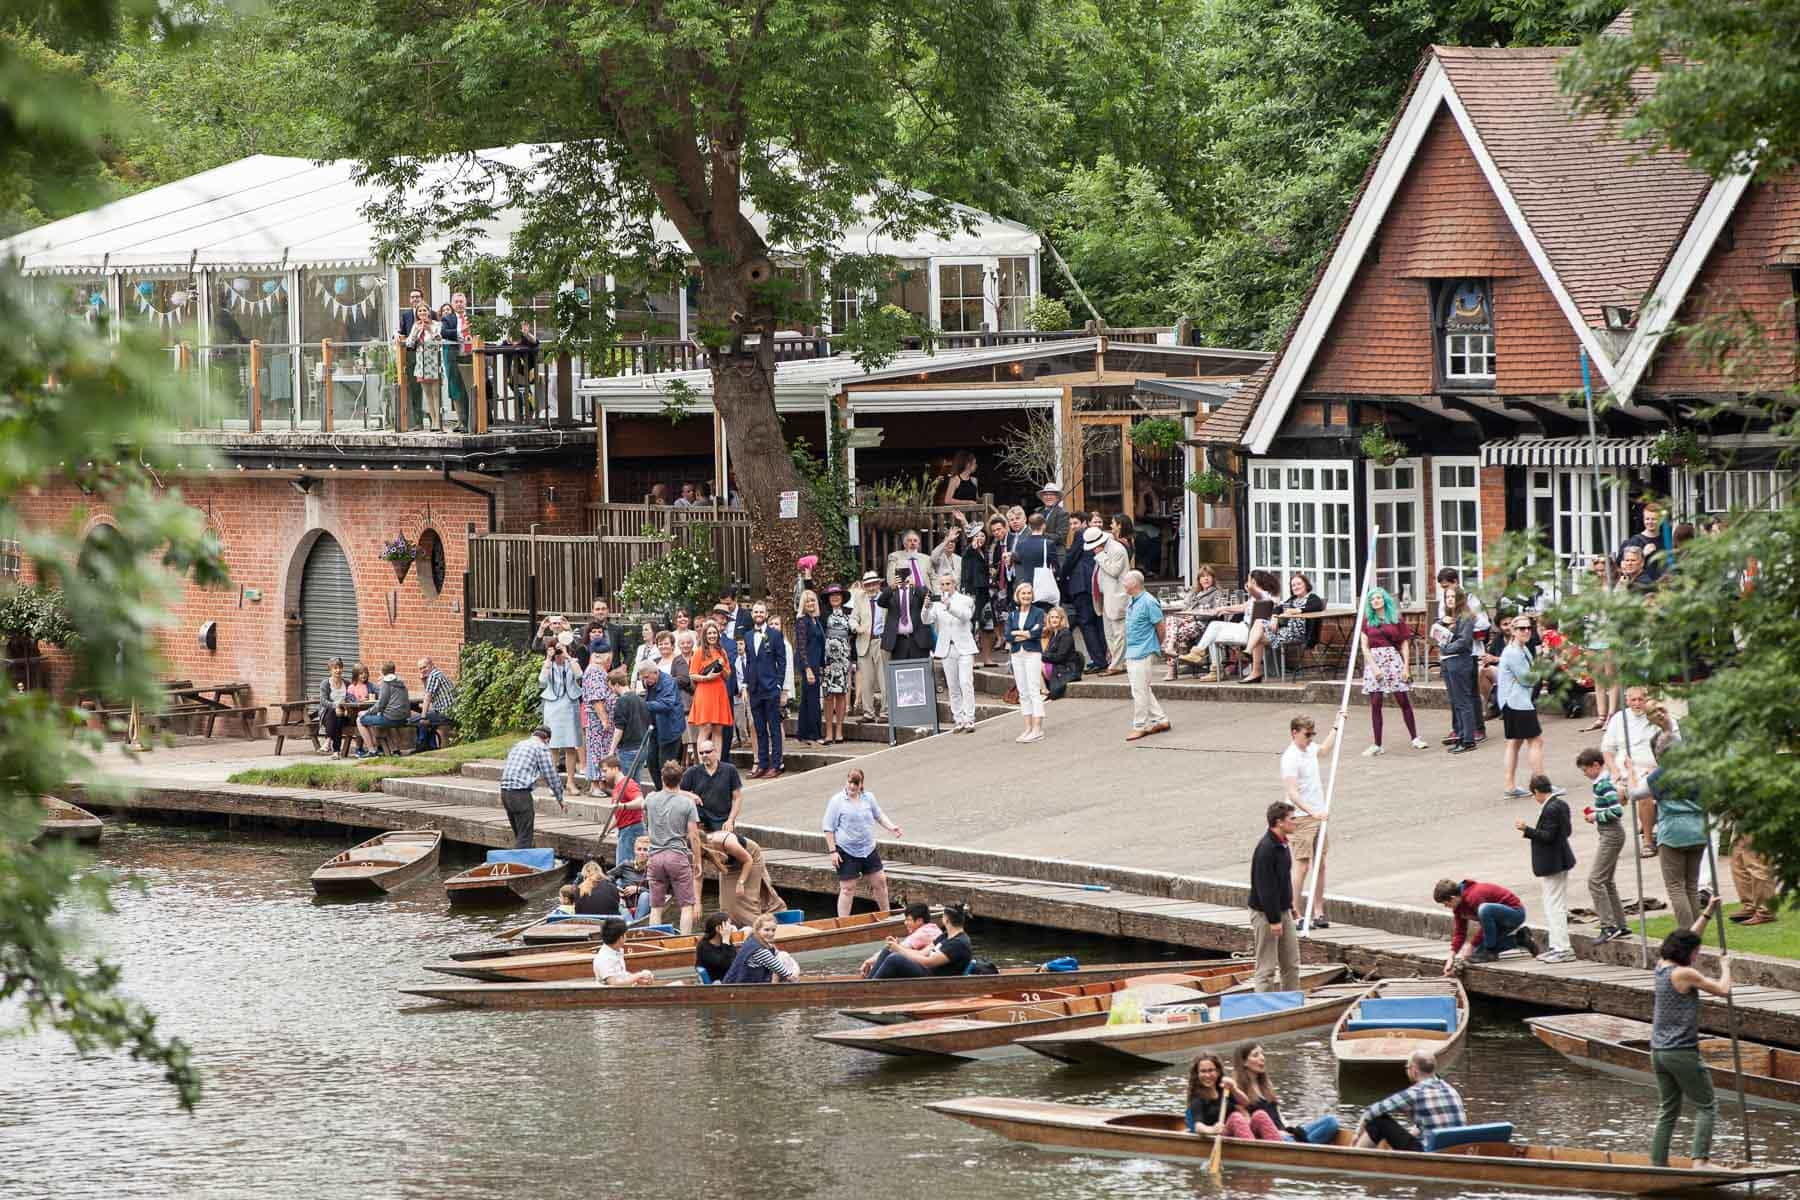 Guests arrive at the Cherwell Boathouse by punt